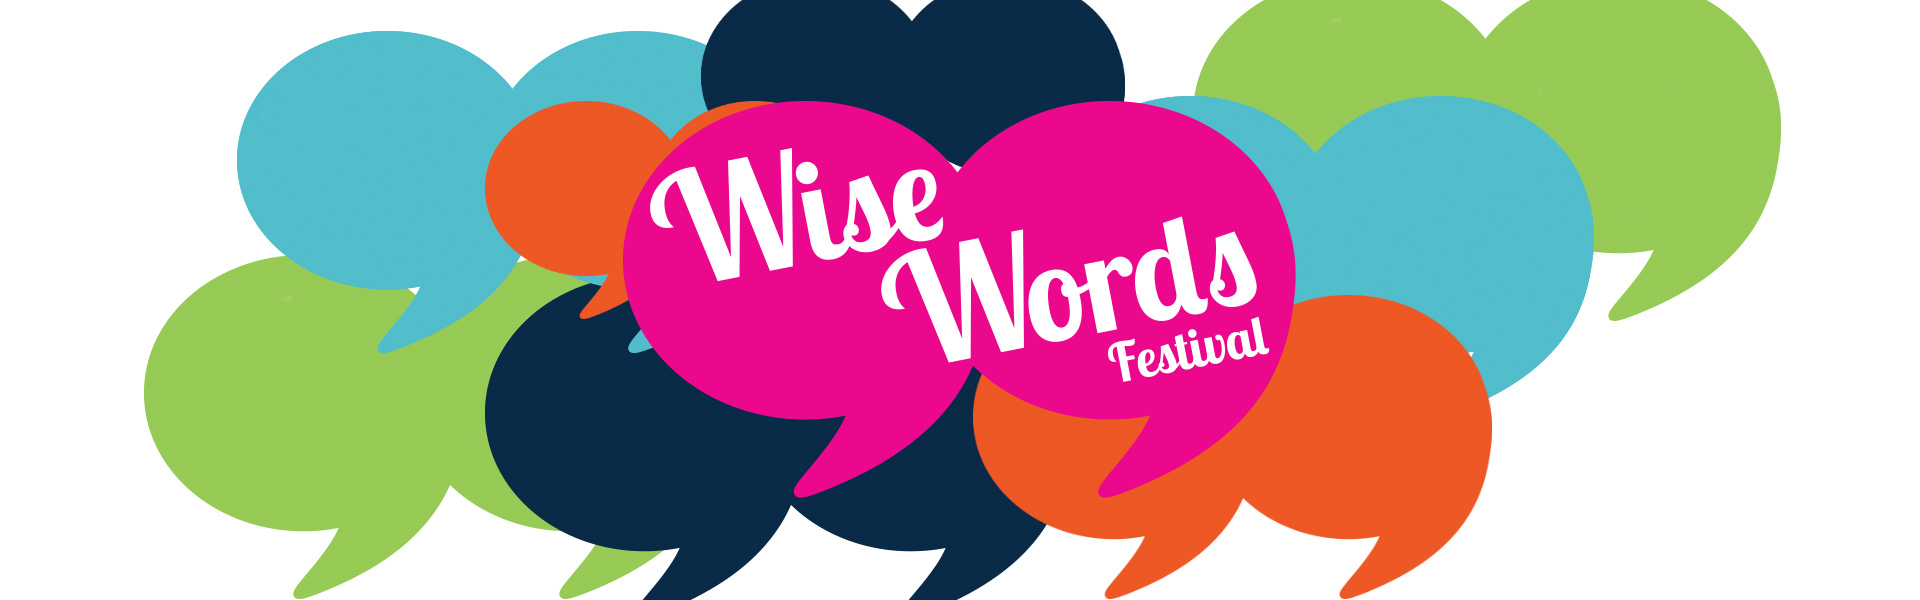 Title banner Wise Words festival